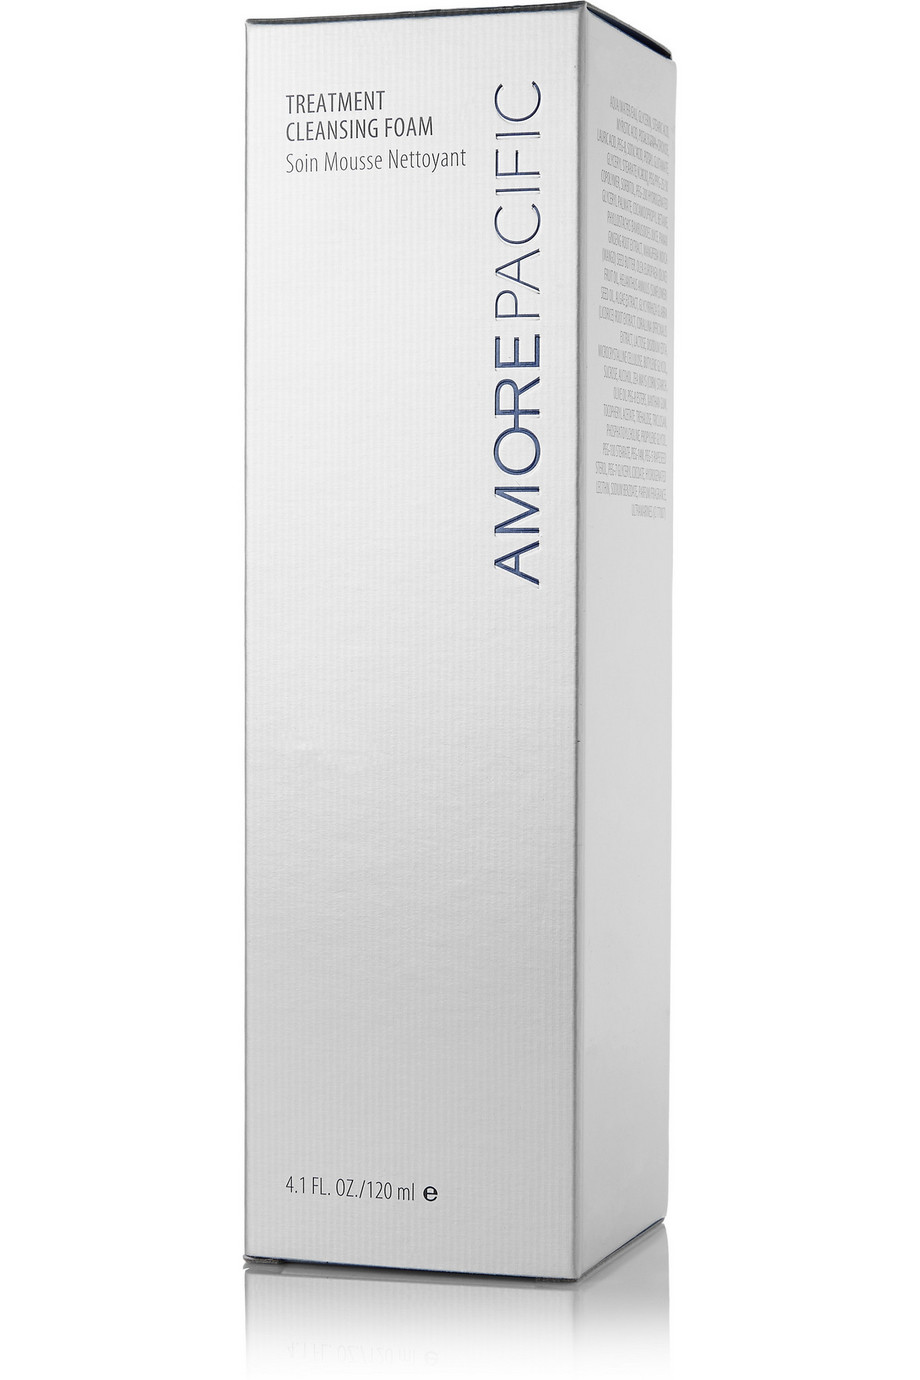 AMOREPACIFIC Treatment Cleansing Foam, 120ml